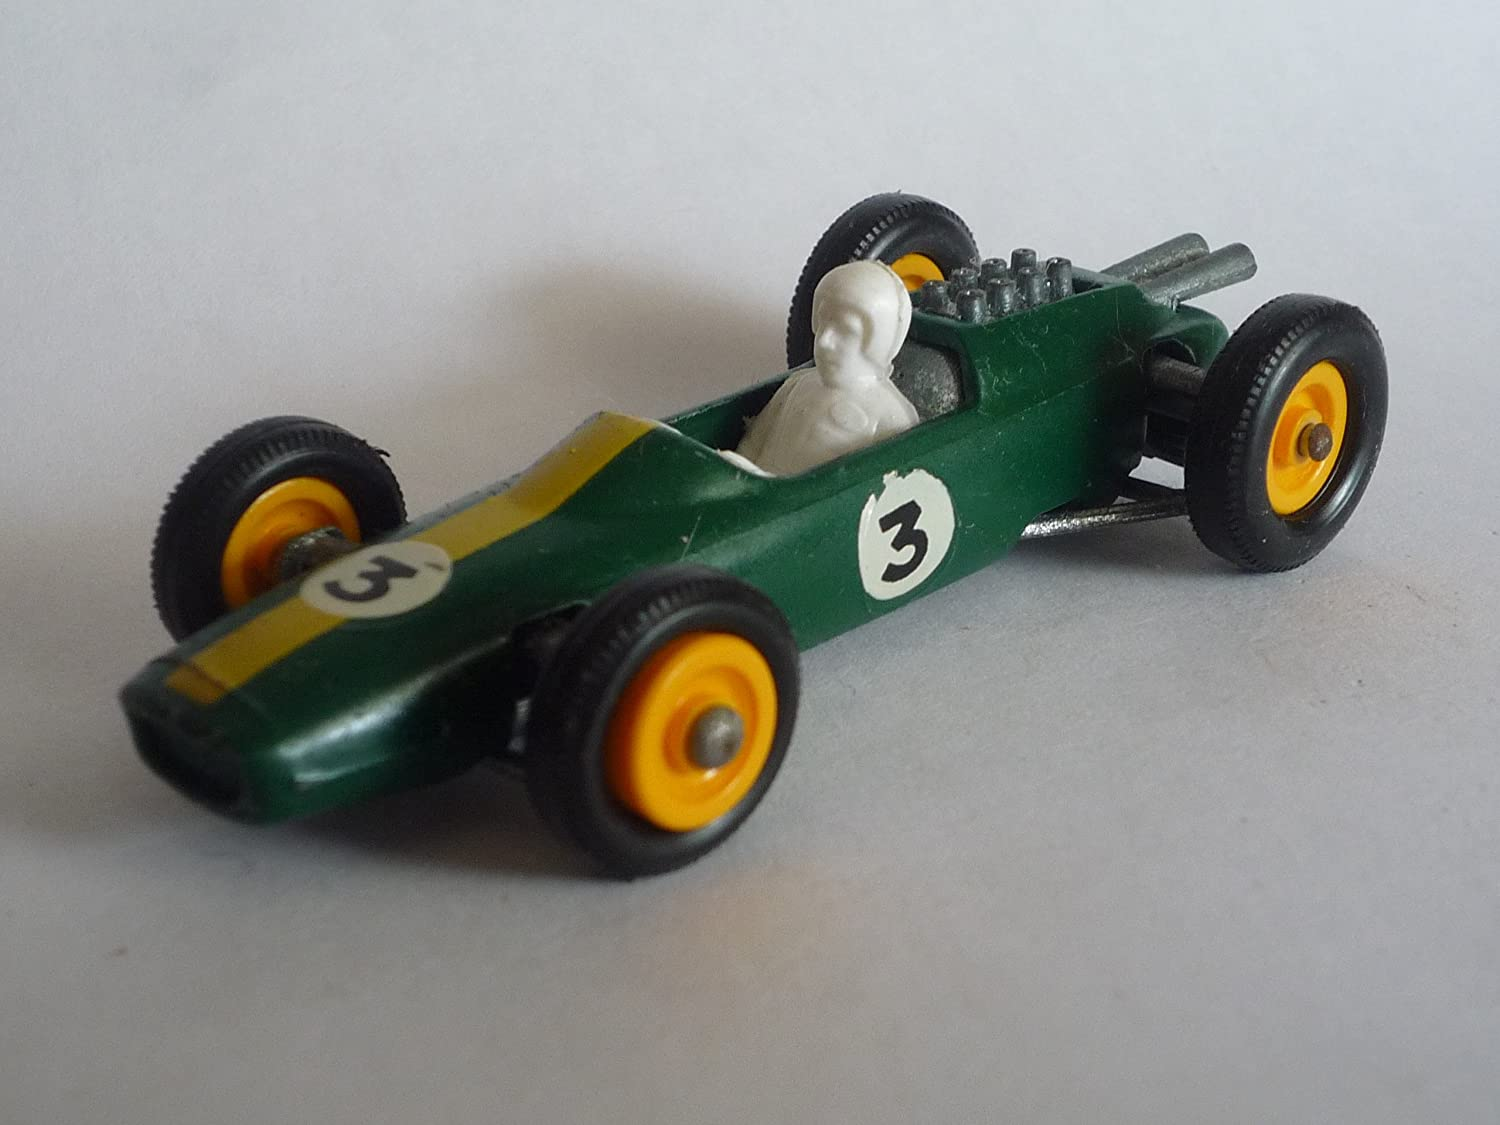 Amazon.com: MATCHBOX SERIES 1966 LESNEY 19D LOTUS RACING CAR: Toys ...